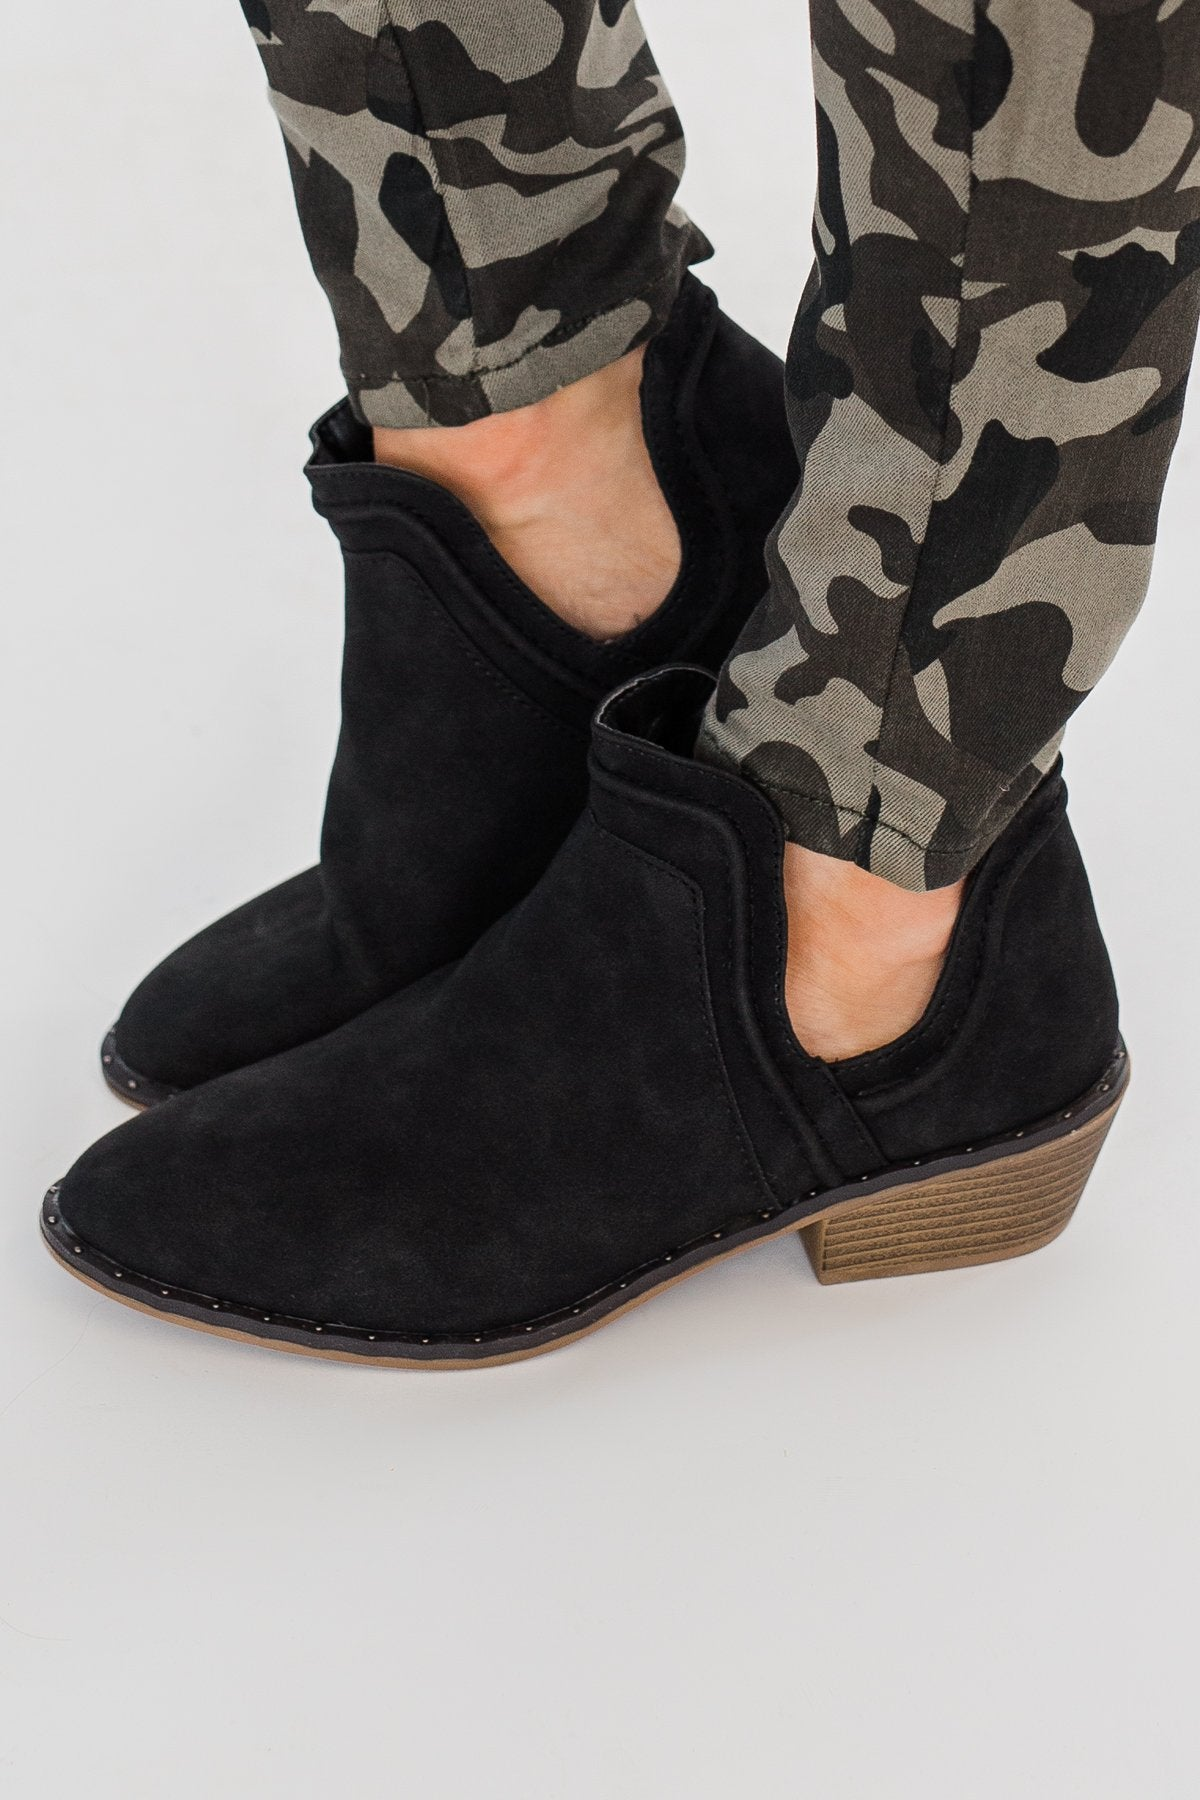 Sugar Envy Booties- Black